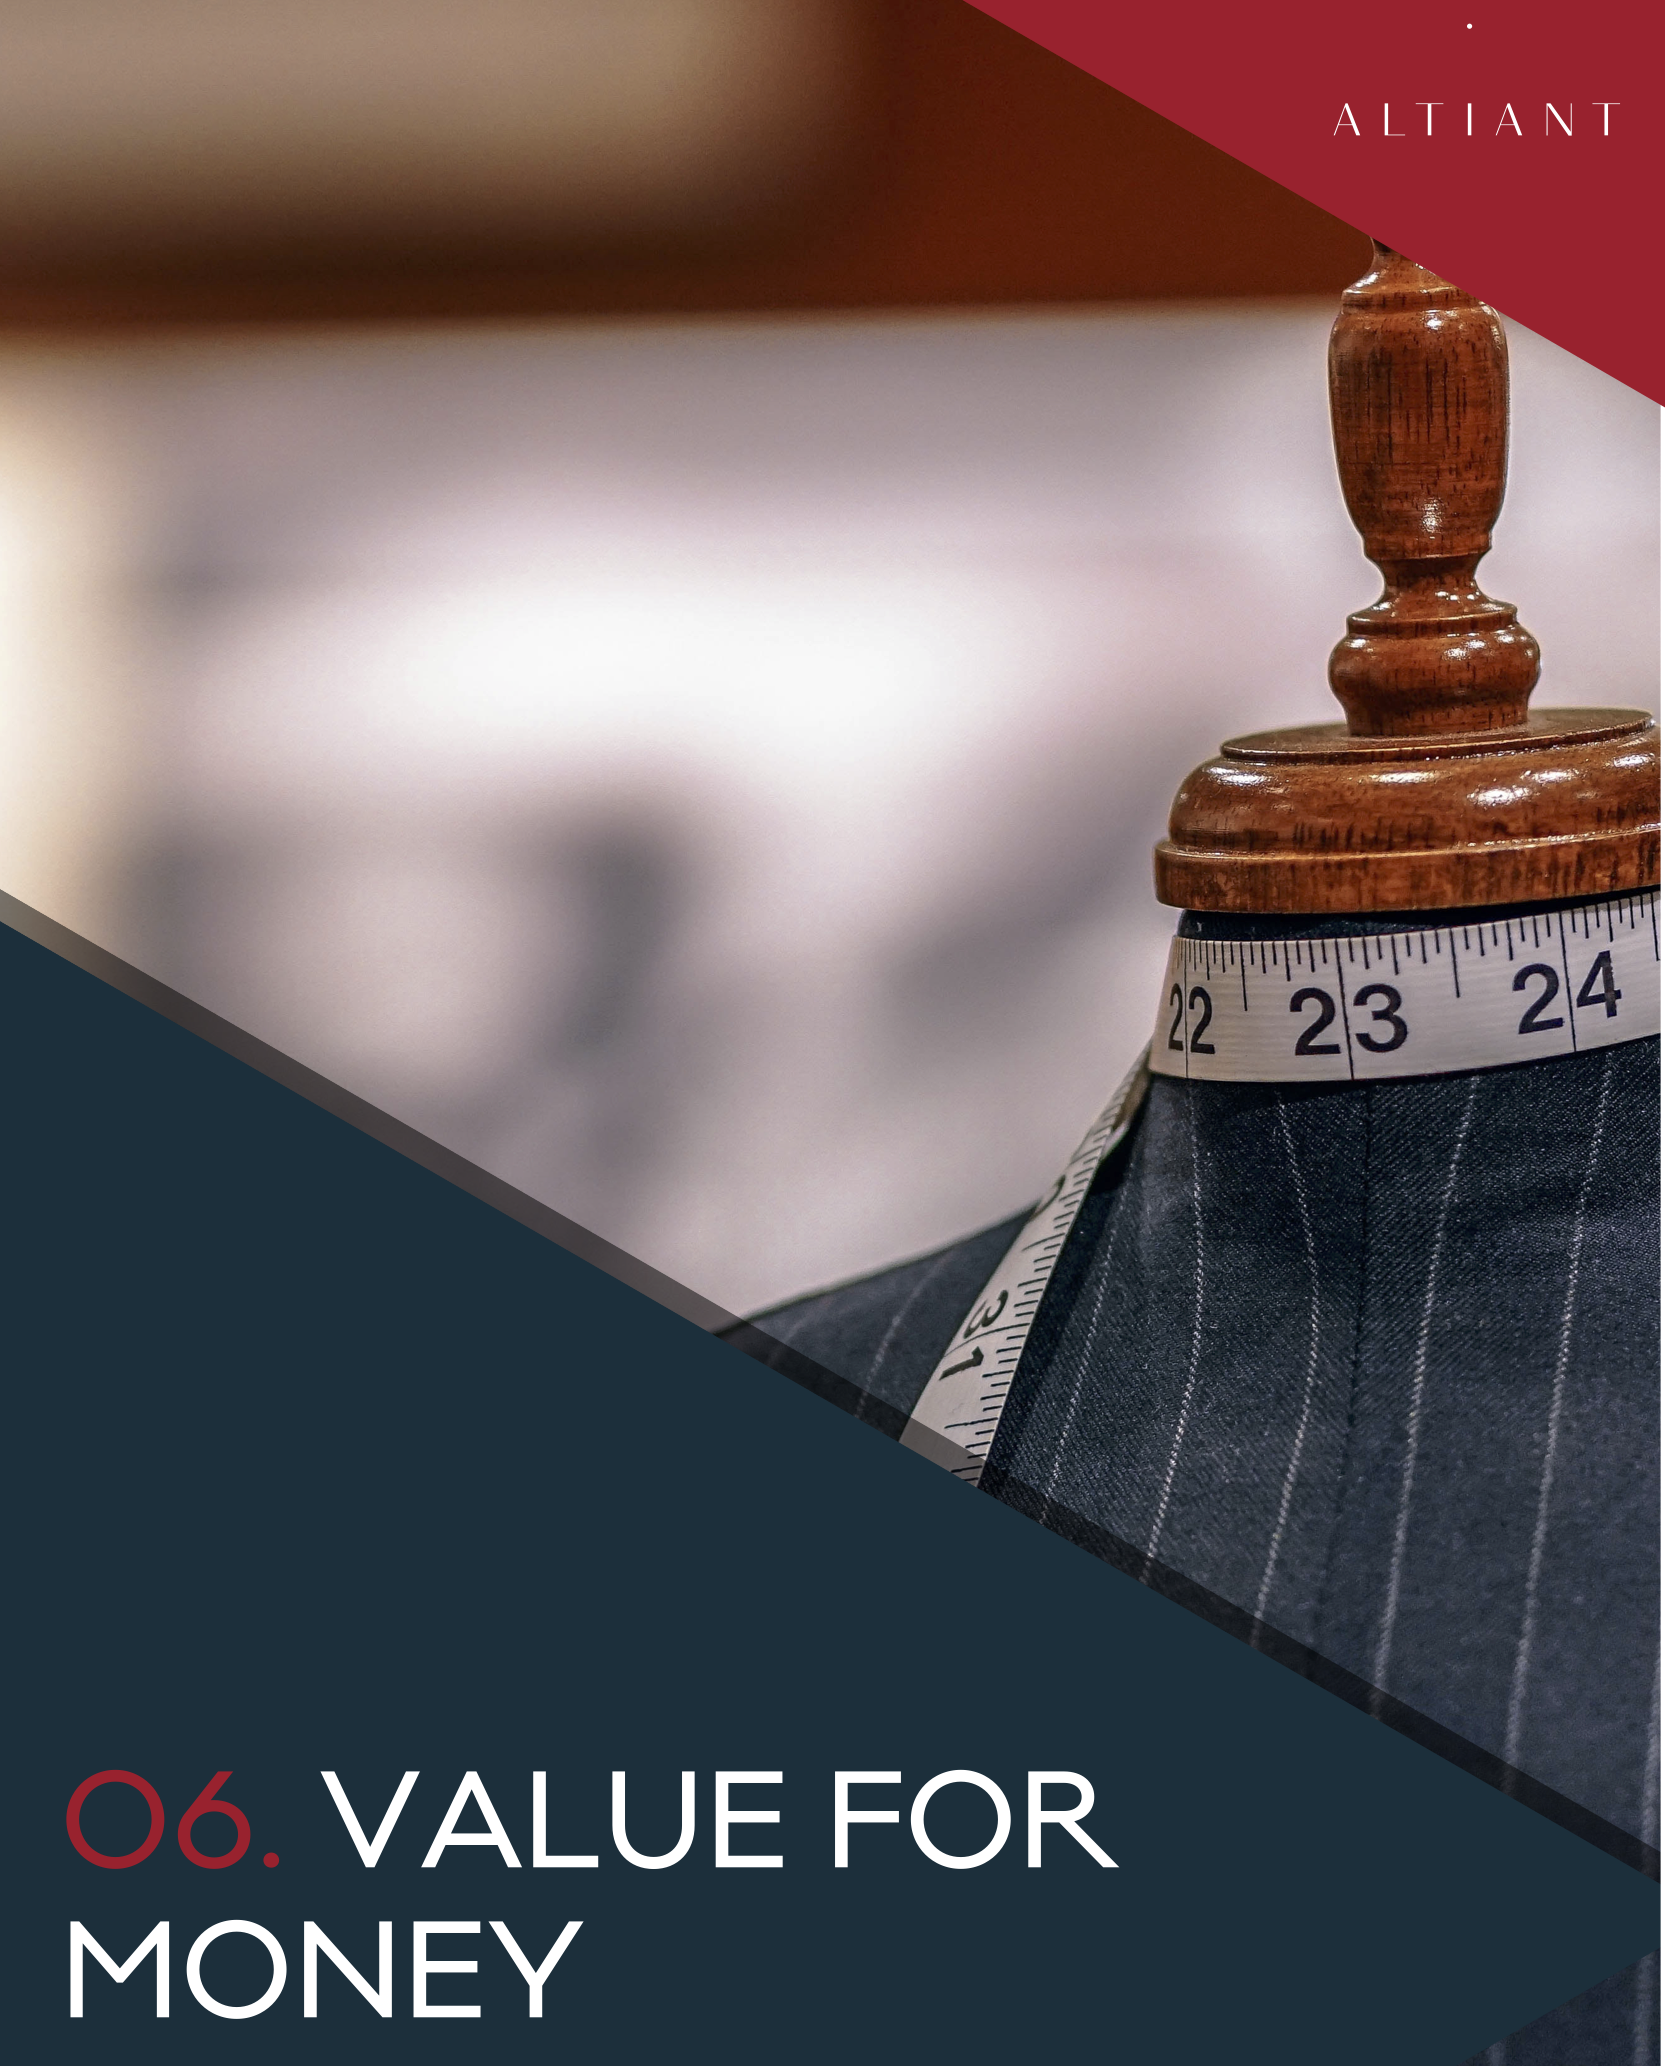 Insight 6 Value for Money Cover.png